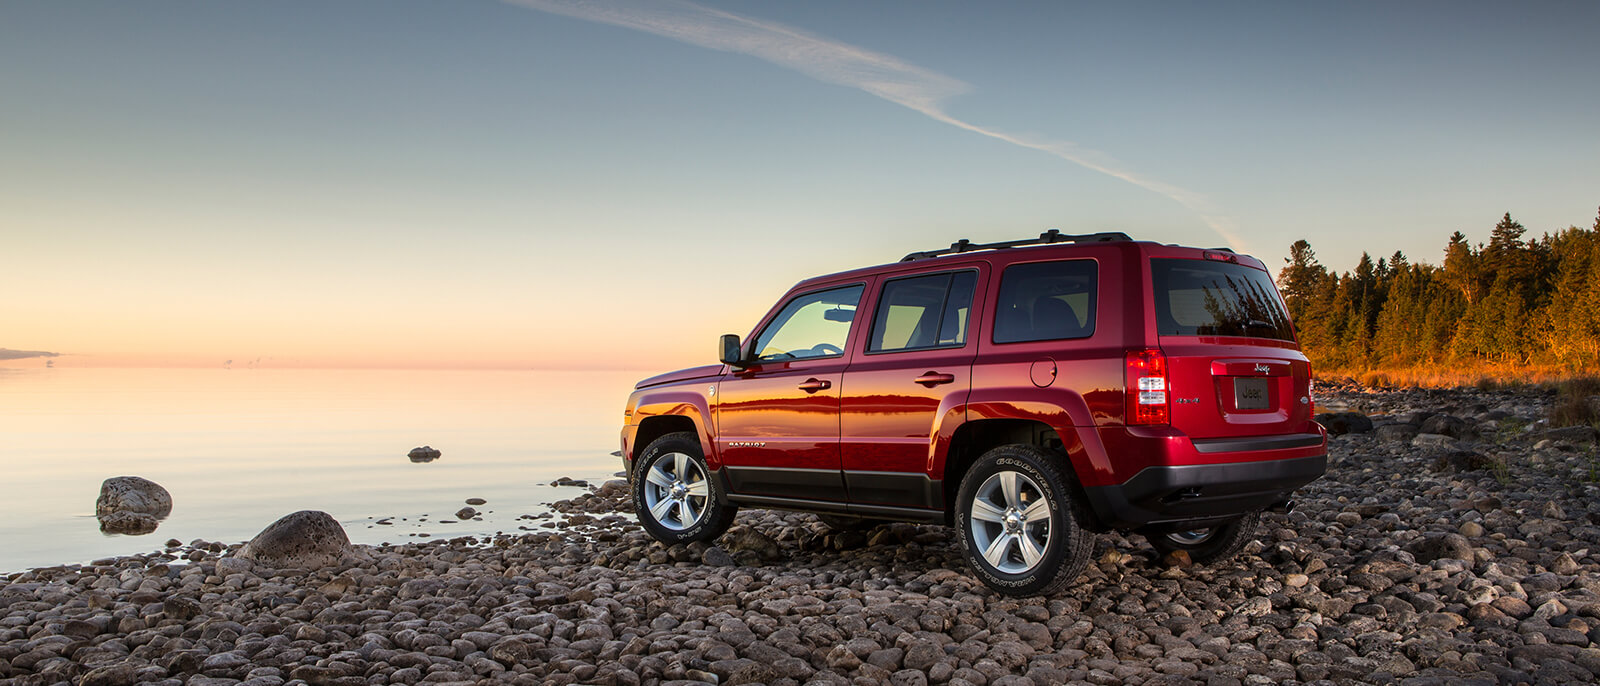 2017 Jeep Patriot Parked